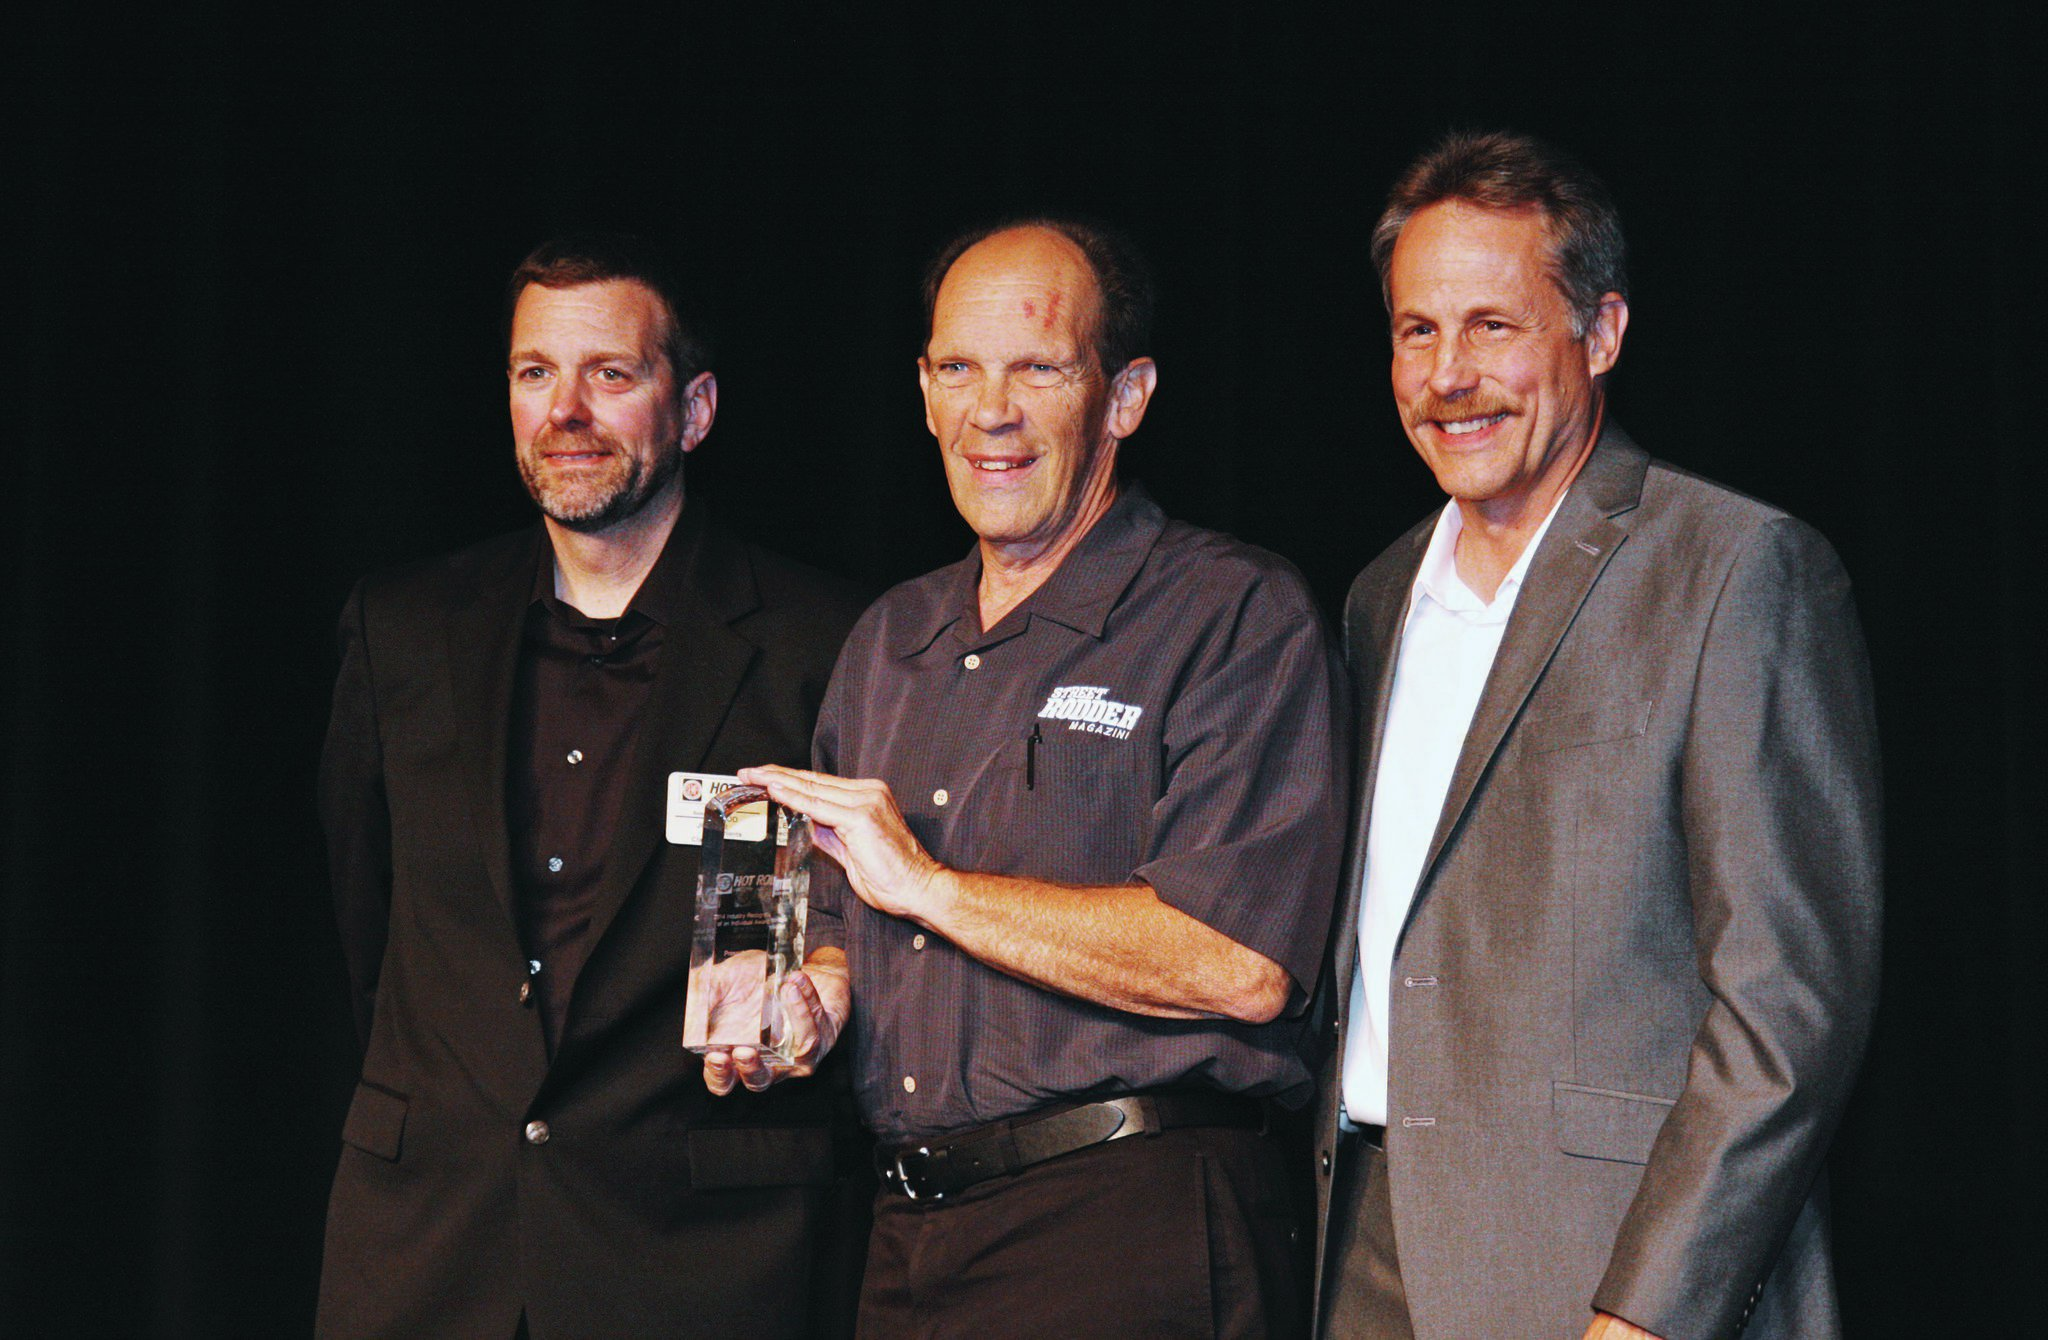 STREET RODDER Editor Brian Brennan (center) receives the 2014 HRIA Industry Recognition Award from HRIA officers John McLeod and Rick Love.